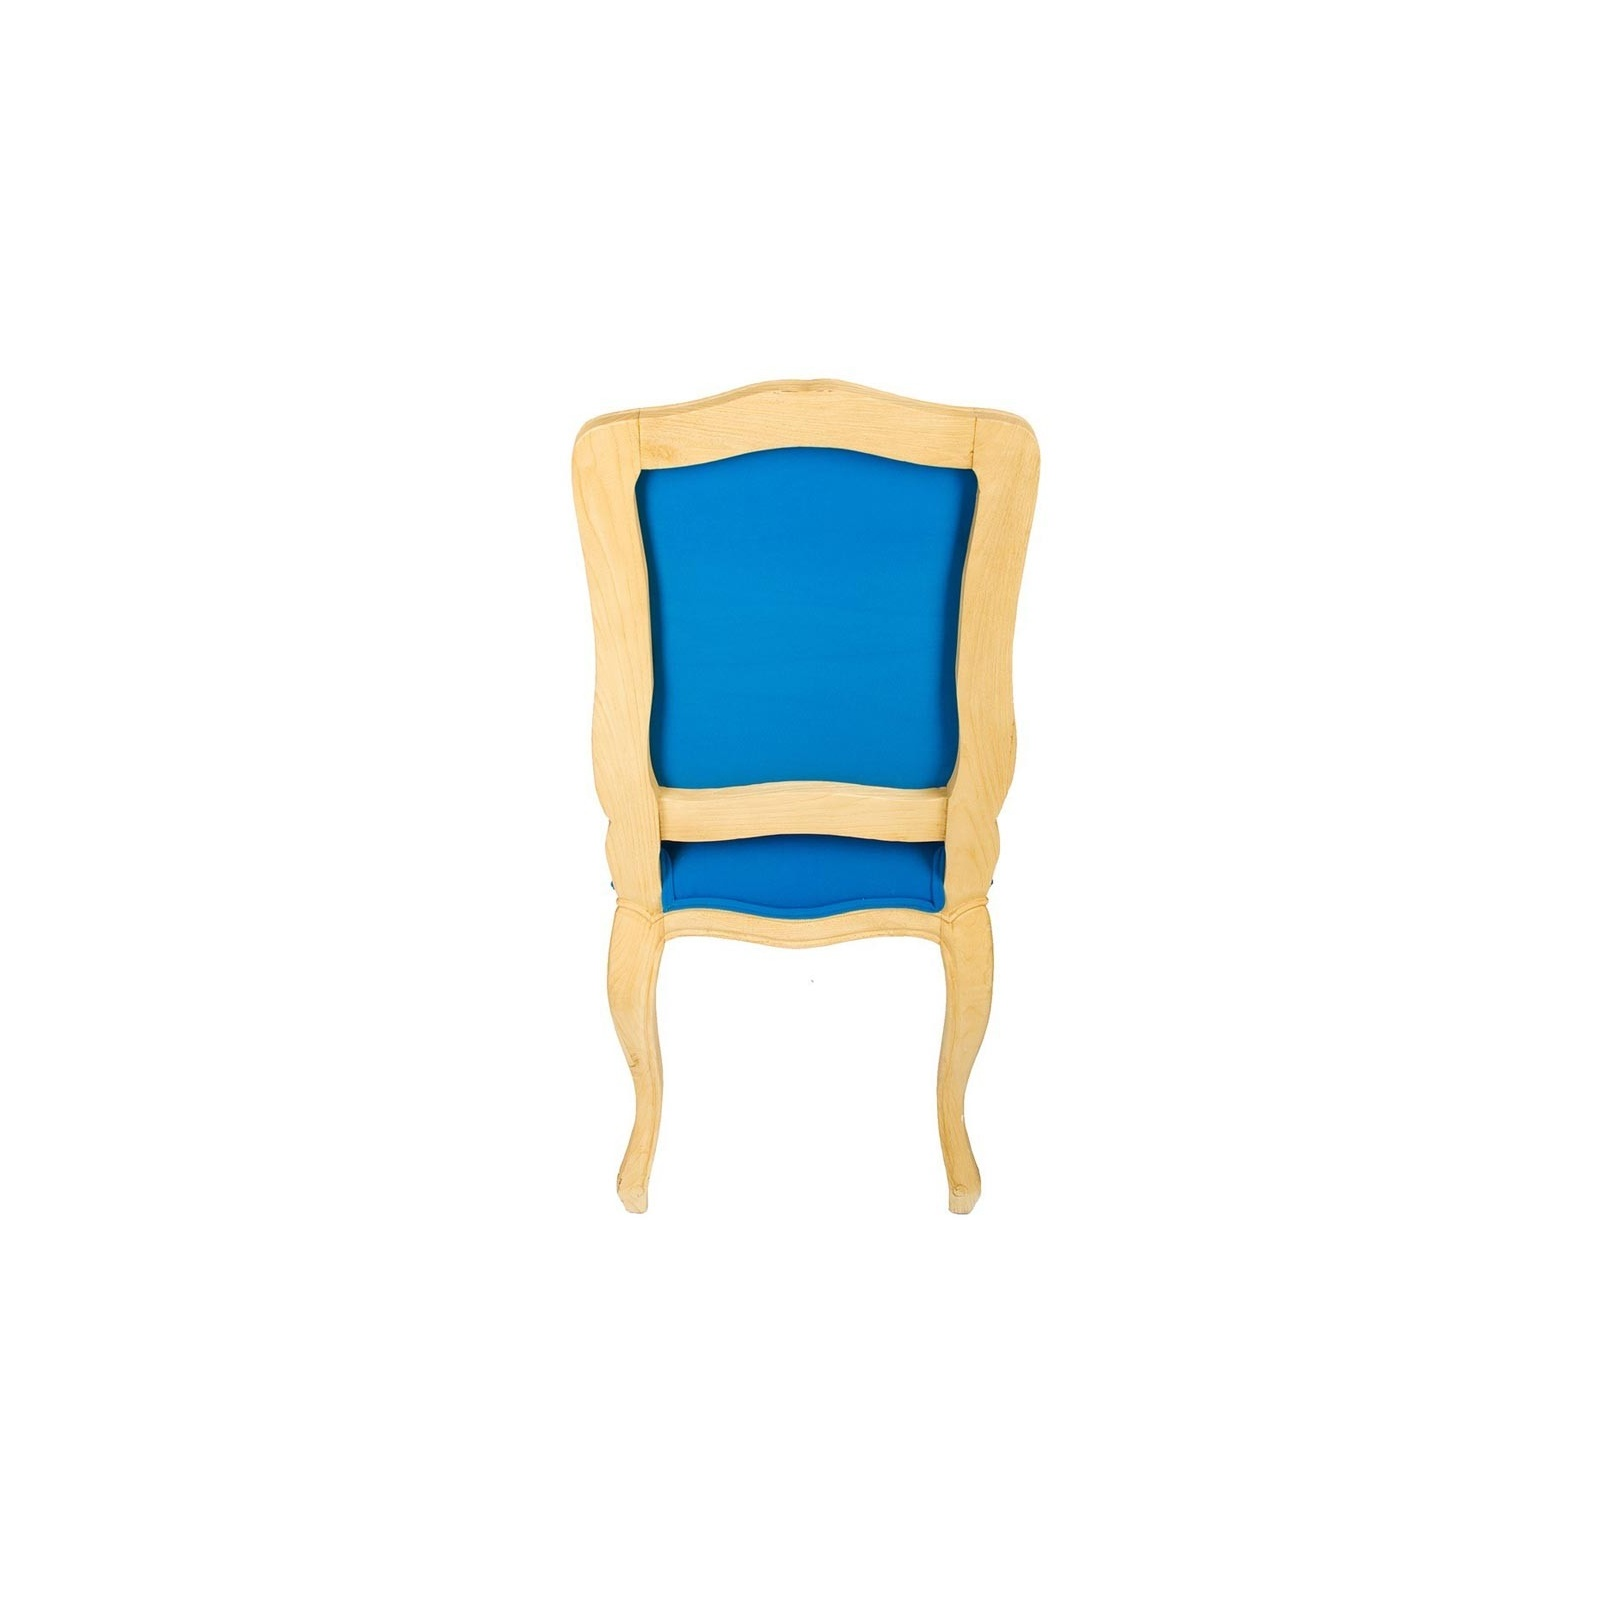 Chaise lxv b jp2b d coration for Chaise 50 cm